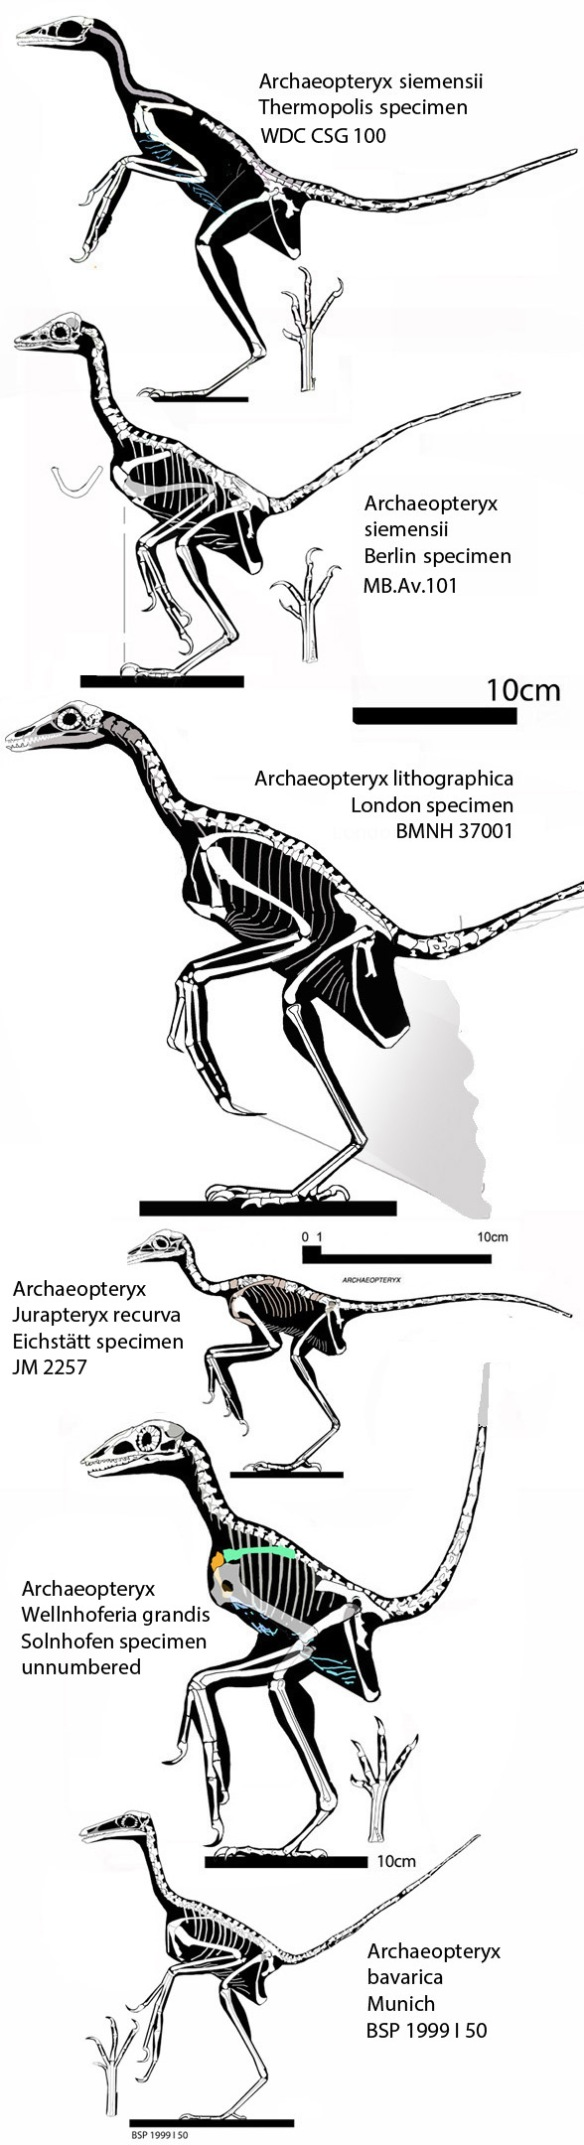 Figure 1. The six tested Solnhofen birds currently named Archaeopteryx, Jurapteryx and Wellnhoferia.